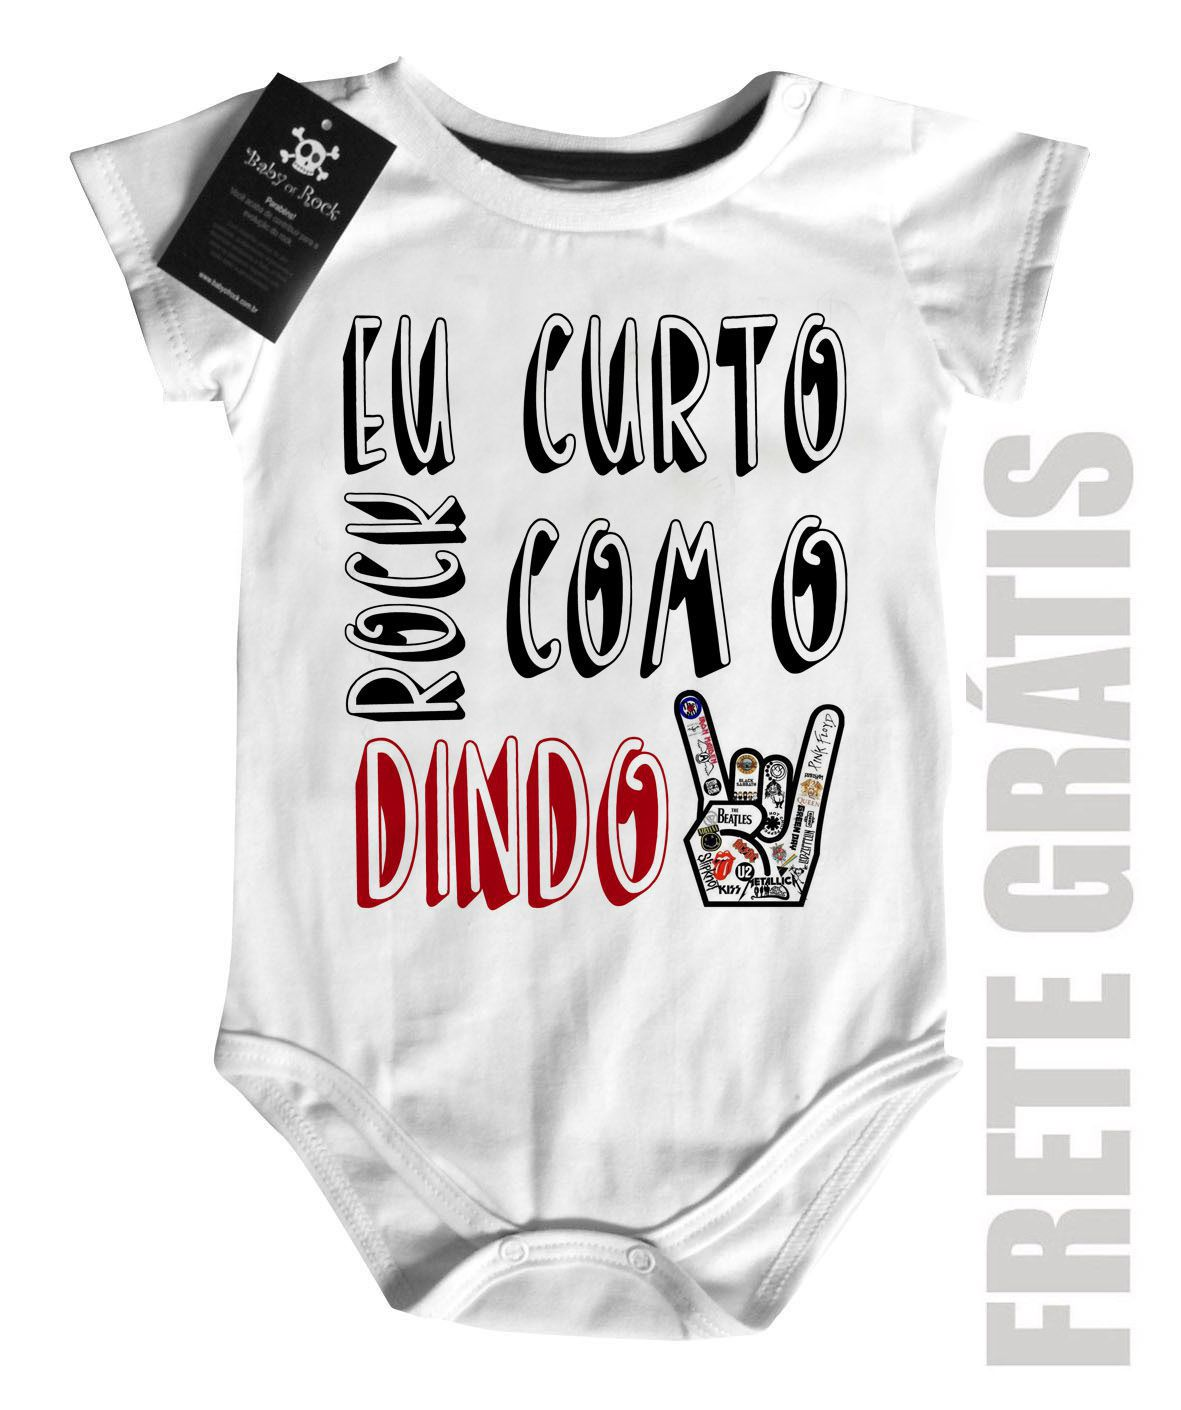 Body Baby Rock - Rock com o dindo- White  - Baby Monster - Body Bebe